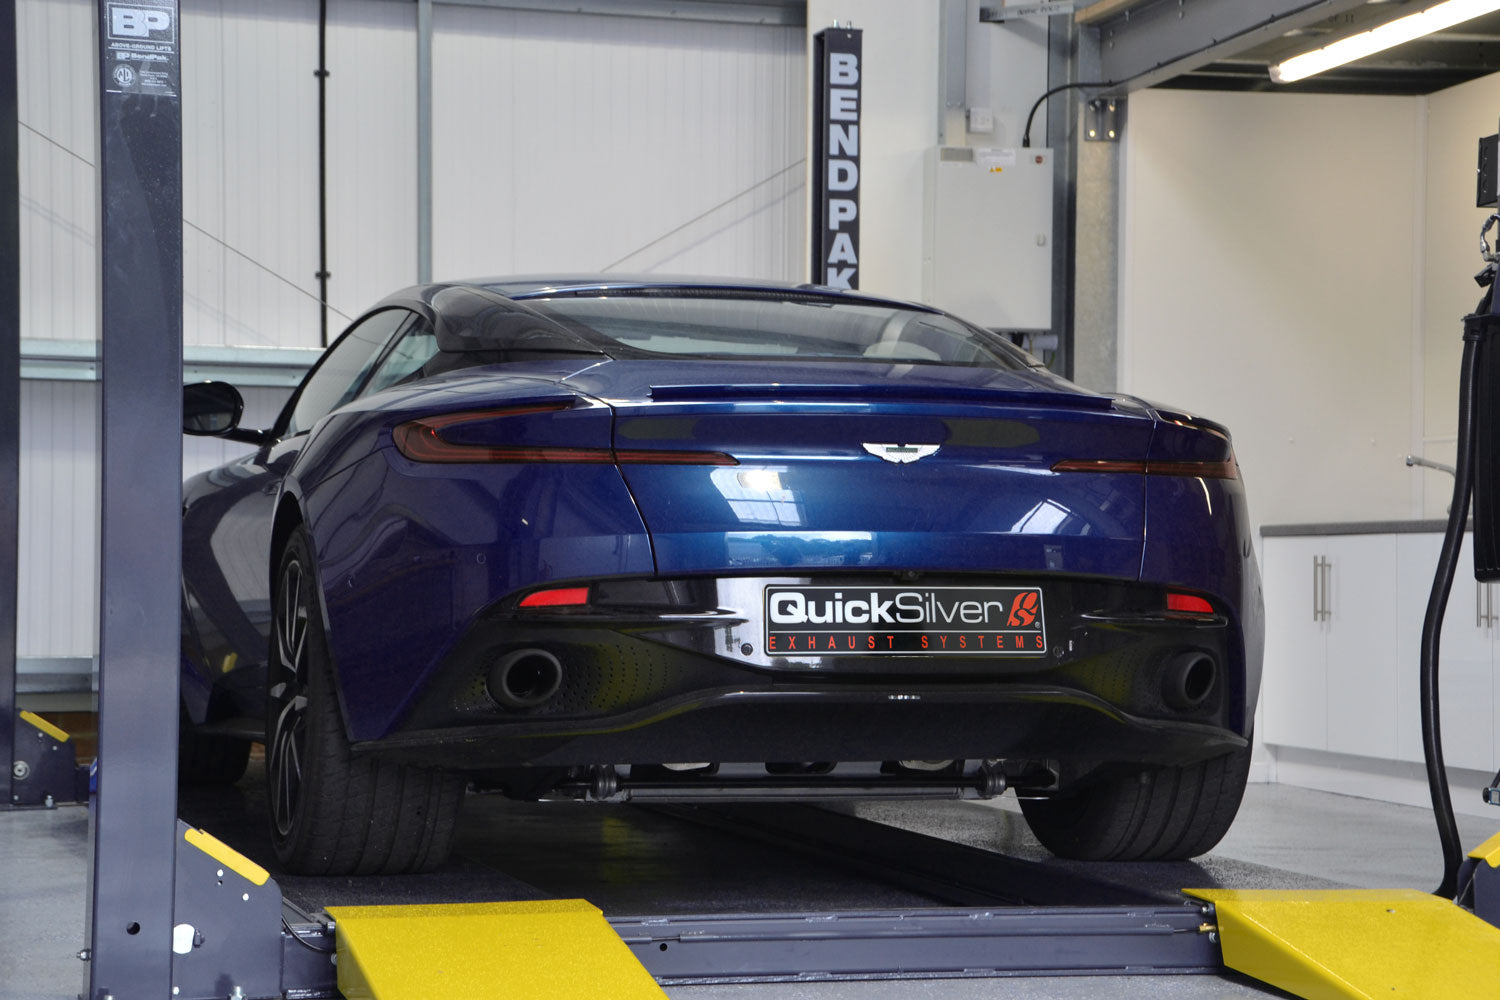 Aston Martin Db11 V8 Secondary Catalyst Delete Pipes 2018 On Quicksilver Exhausts